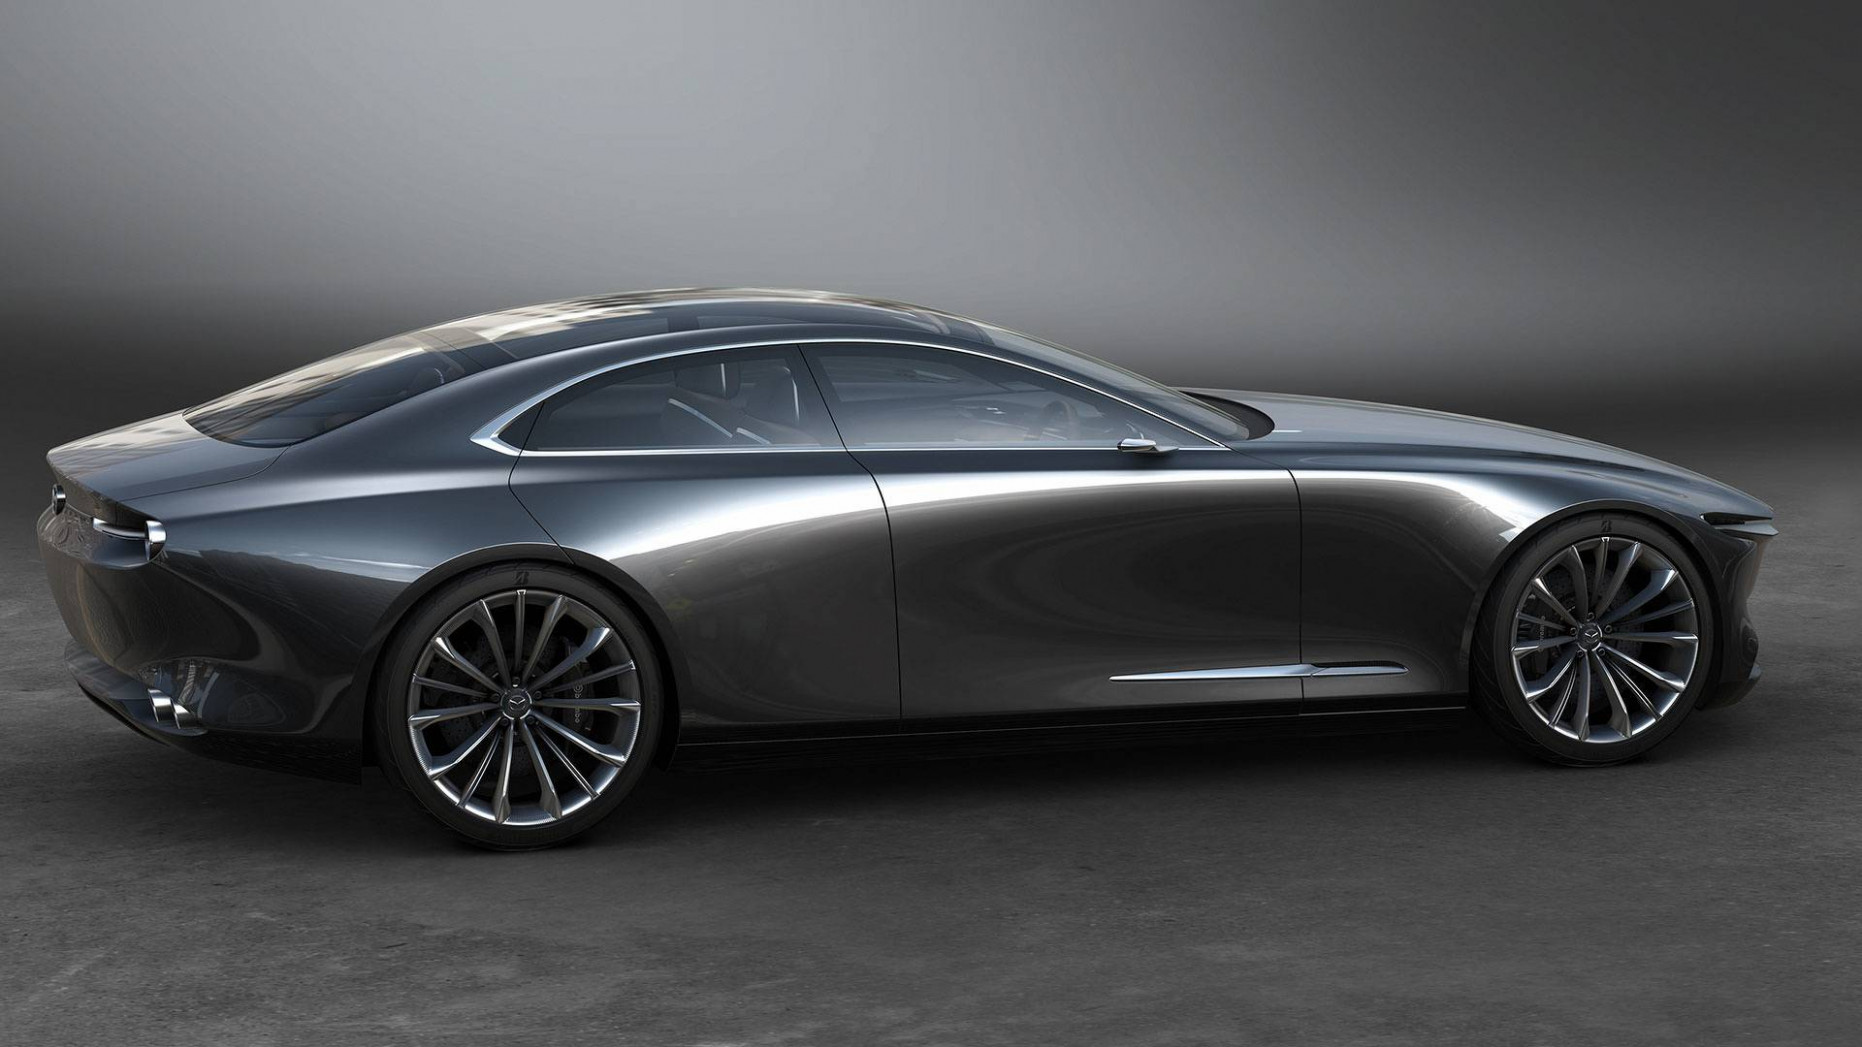 Redesign and Concept 2022 Mazda 6 Coupe